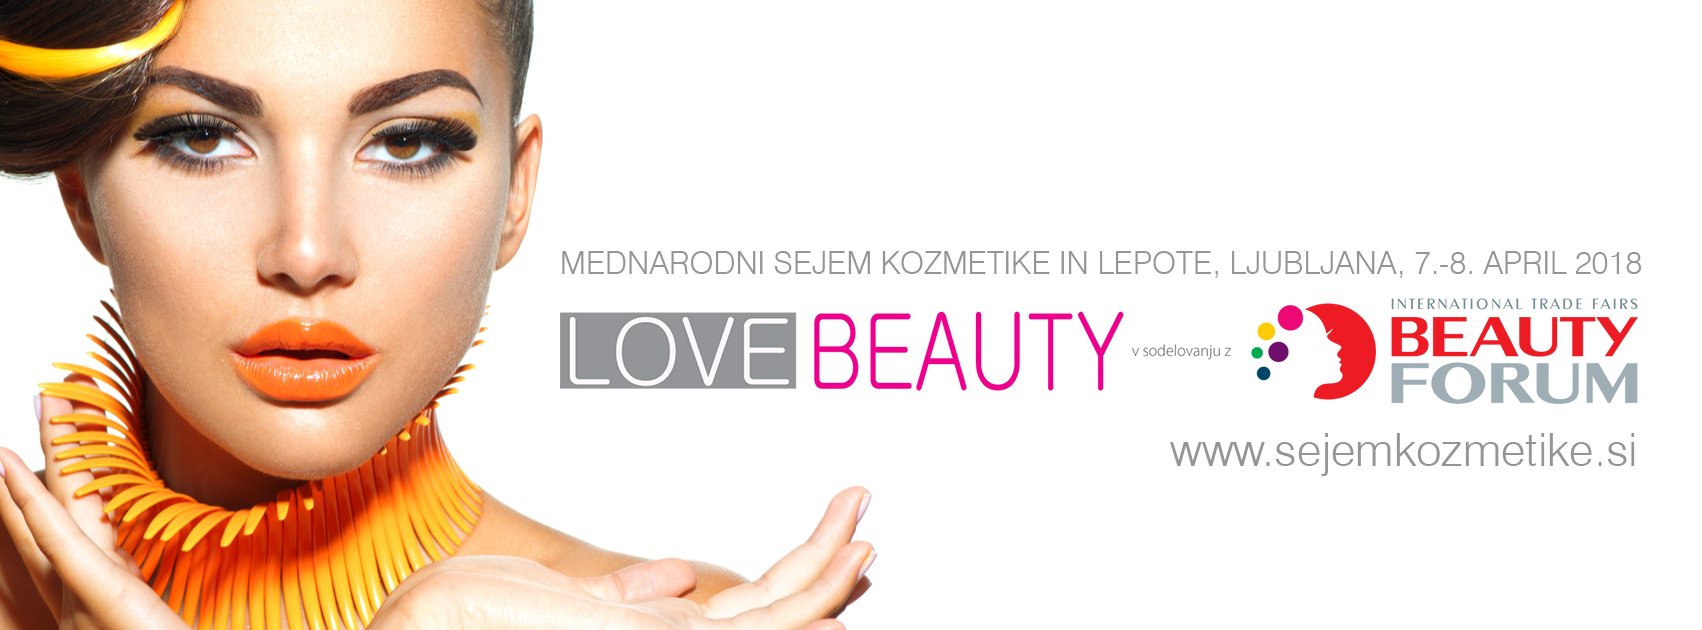 3. LJUBLJANA Sejem kozmetike in lepote LOVE BEAUTY 7.- 8. 4. 2018.